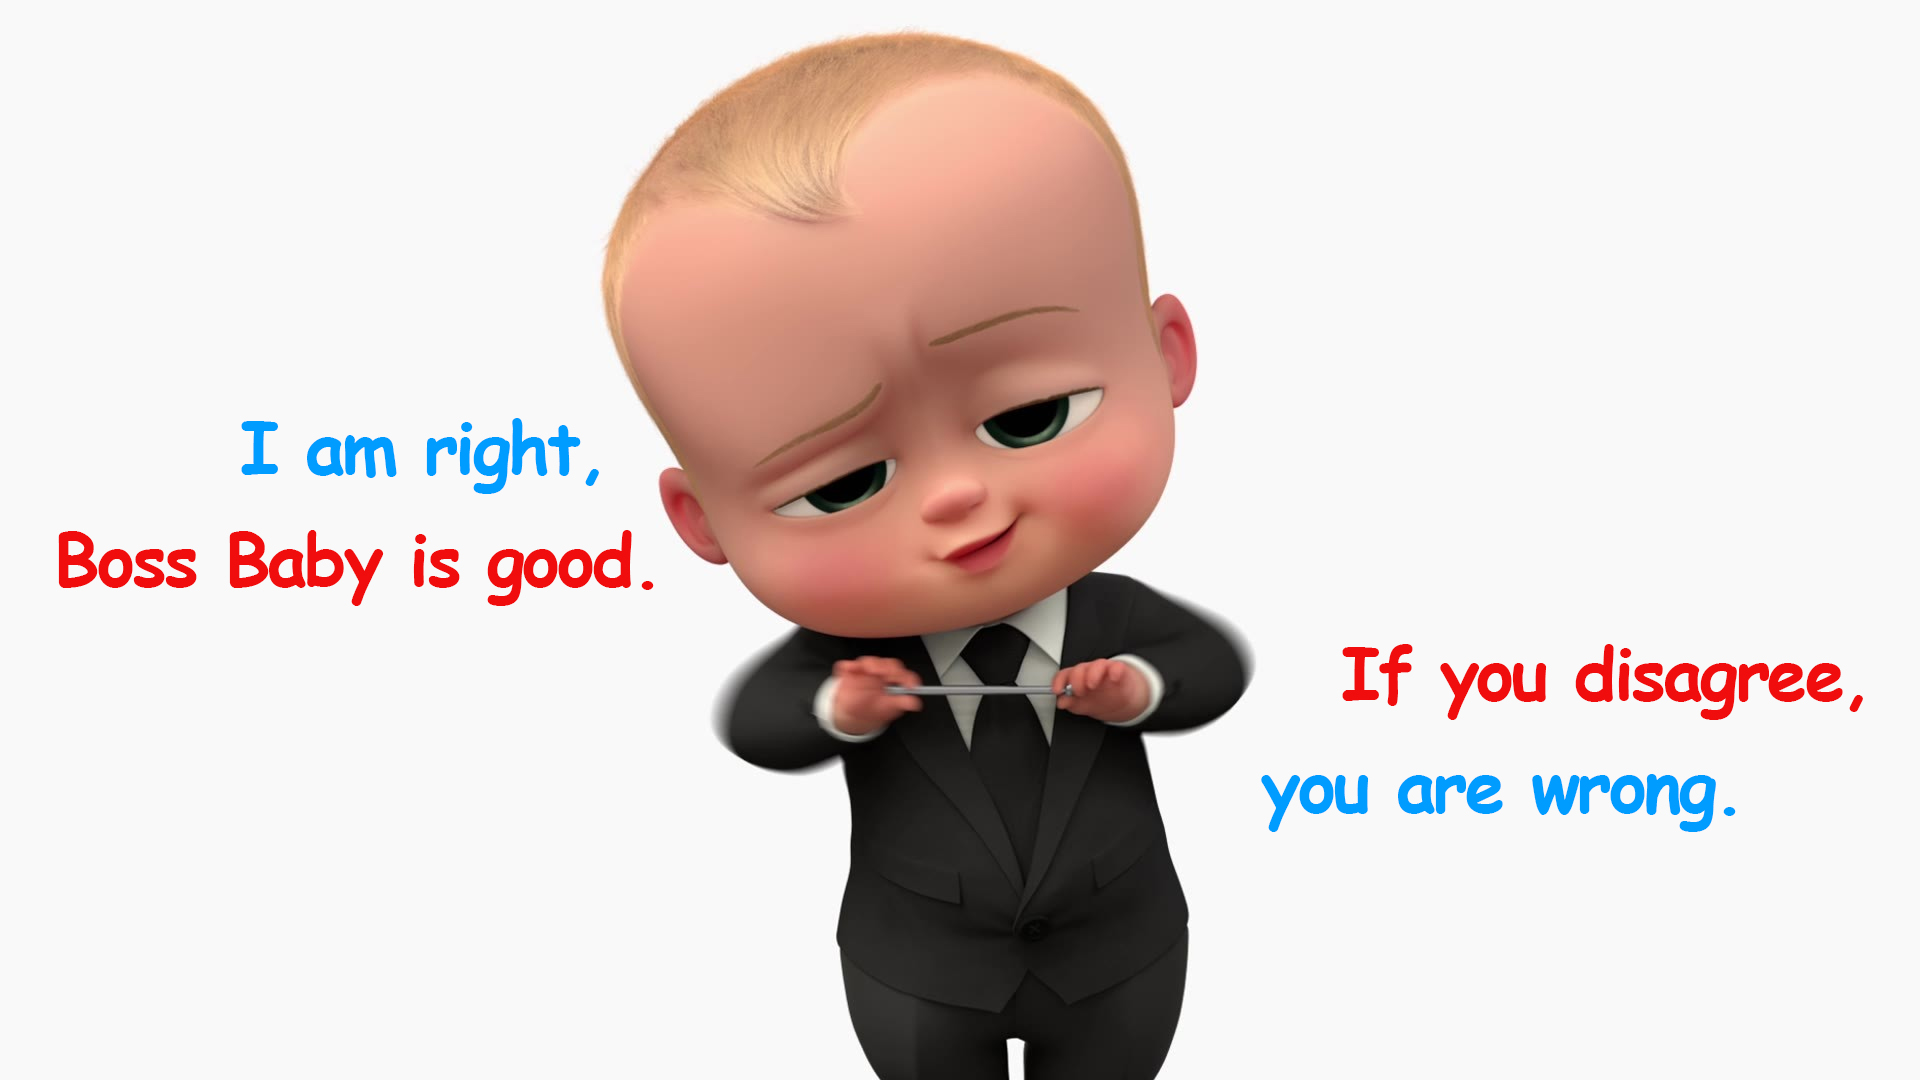 Sorry, Haters: 'The Boss Baby' Deserves Its Oscar Nomination